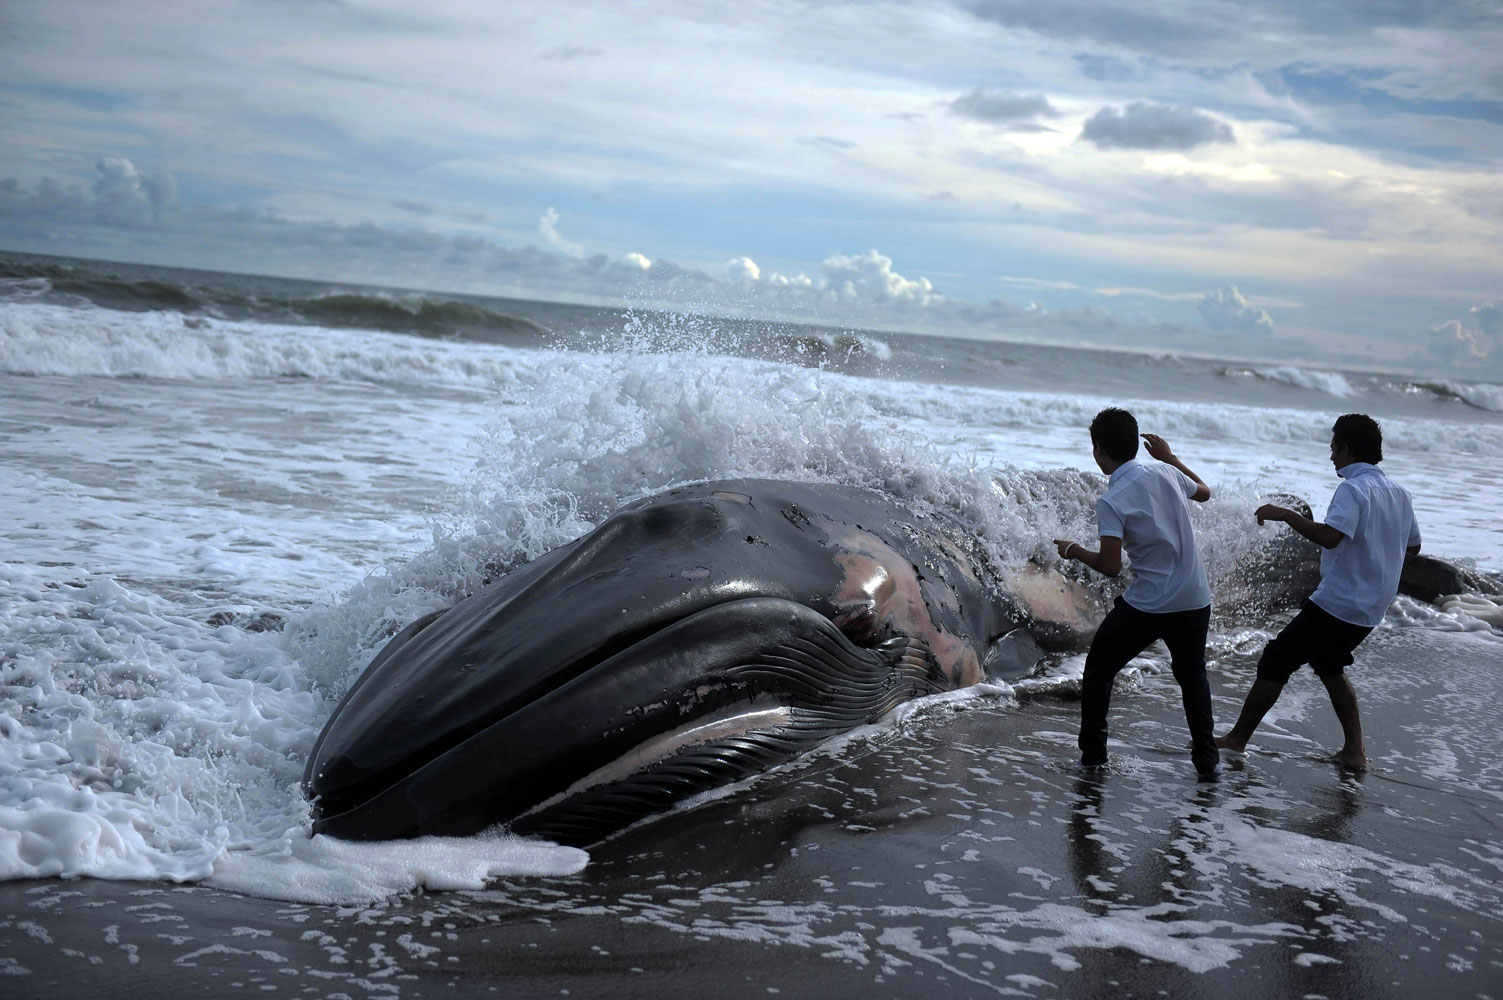 July 4, 2011. Two boys look at the body of a humpback whale at Toluca beach, 50 km south from San Salvador.